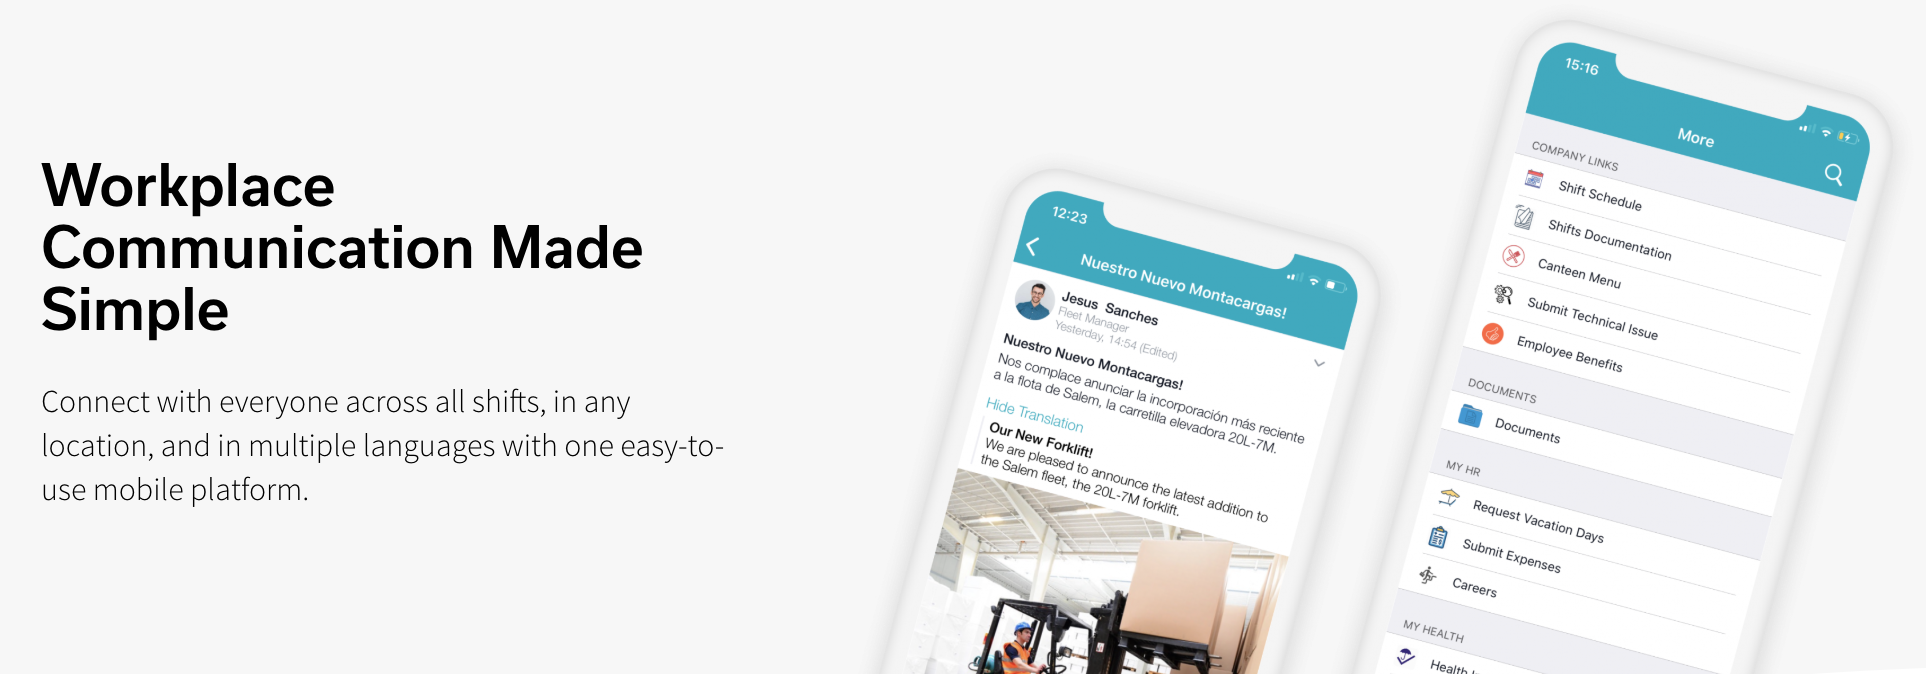 Review Beekeeper: Workplace Communication Made Simple - Appvizer